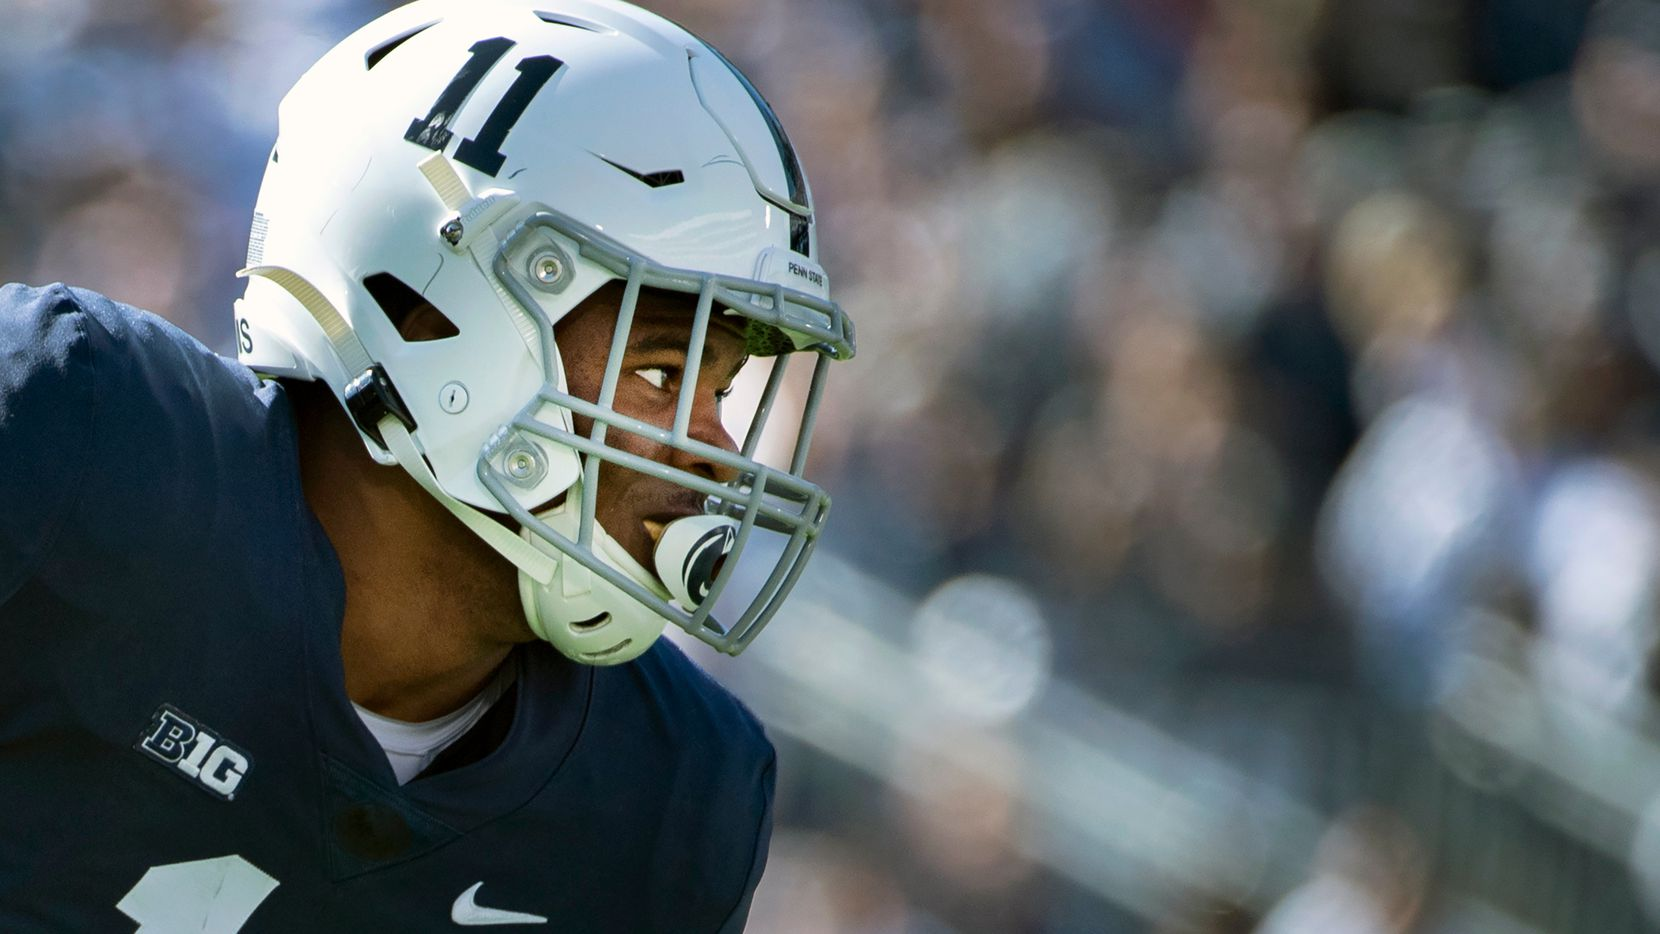 FILE - Penn State linebacker Micah Parsons (11) is shown during an NCAA college football game against Purdue in State College, Pa., in this Saturday, Oct. 5, 2019, file photo. Parsons is a possible first round pick in the NFL Draft, April 29-May 1, 2021, in Cleveland.